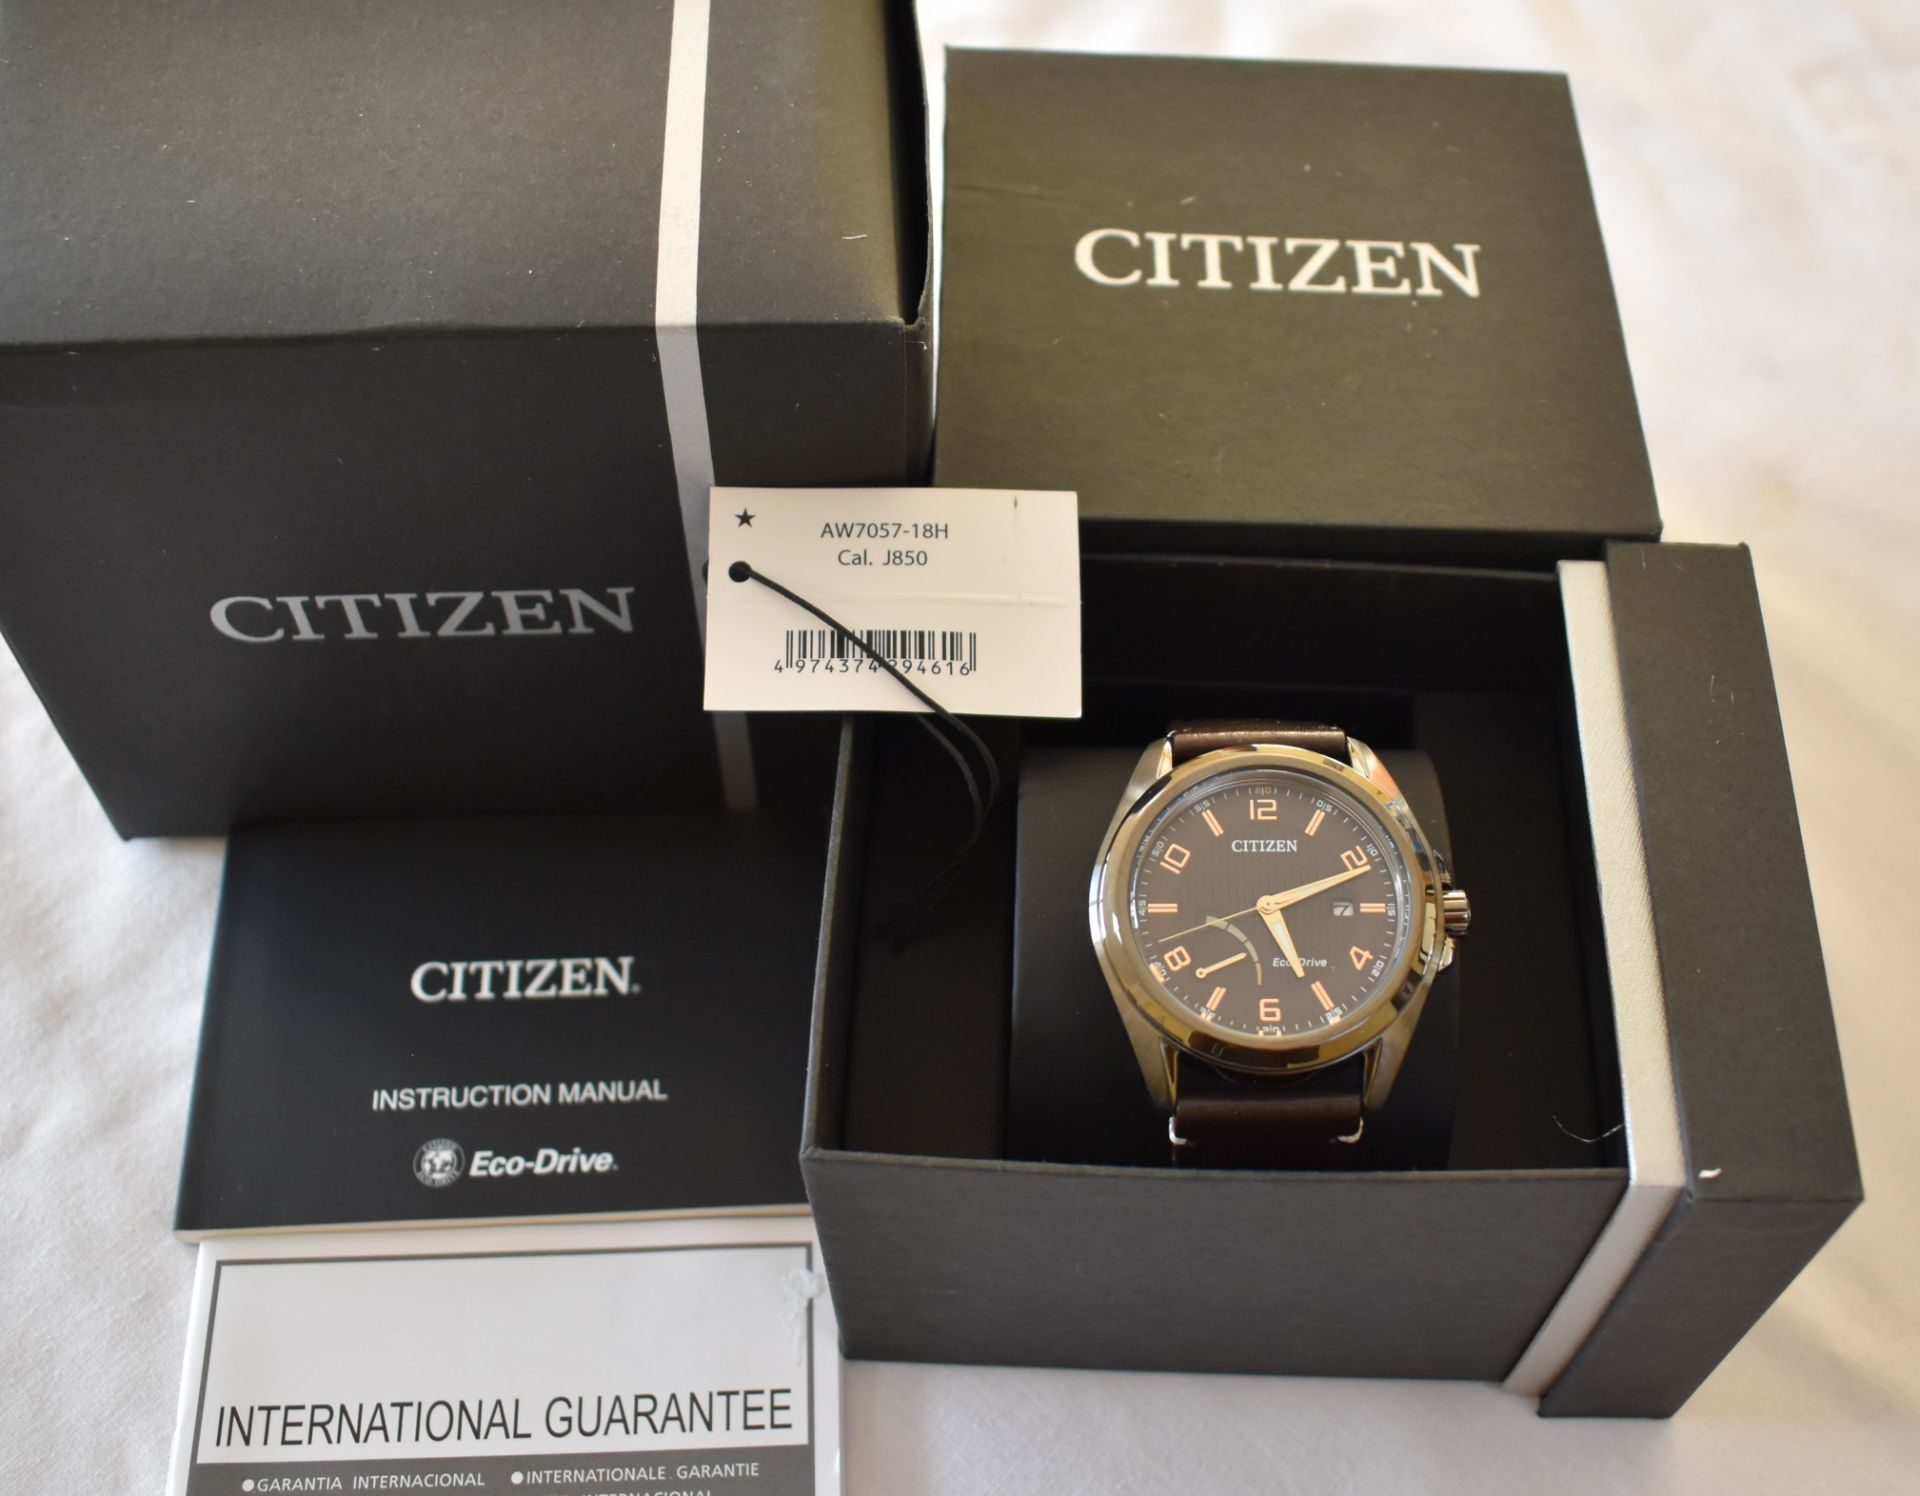 Citizen Men's Watch AW7057-18H - Image 3 of 3